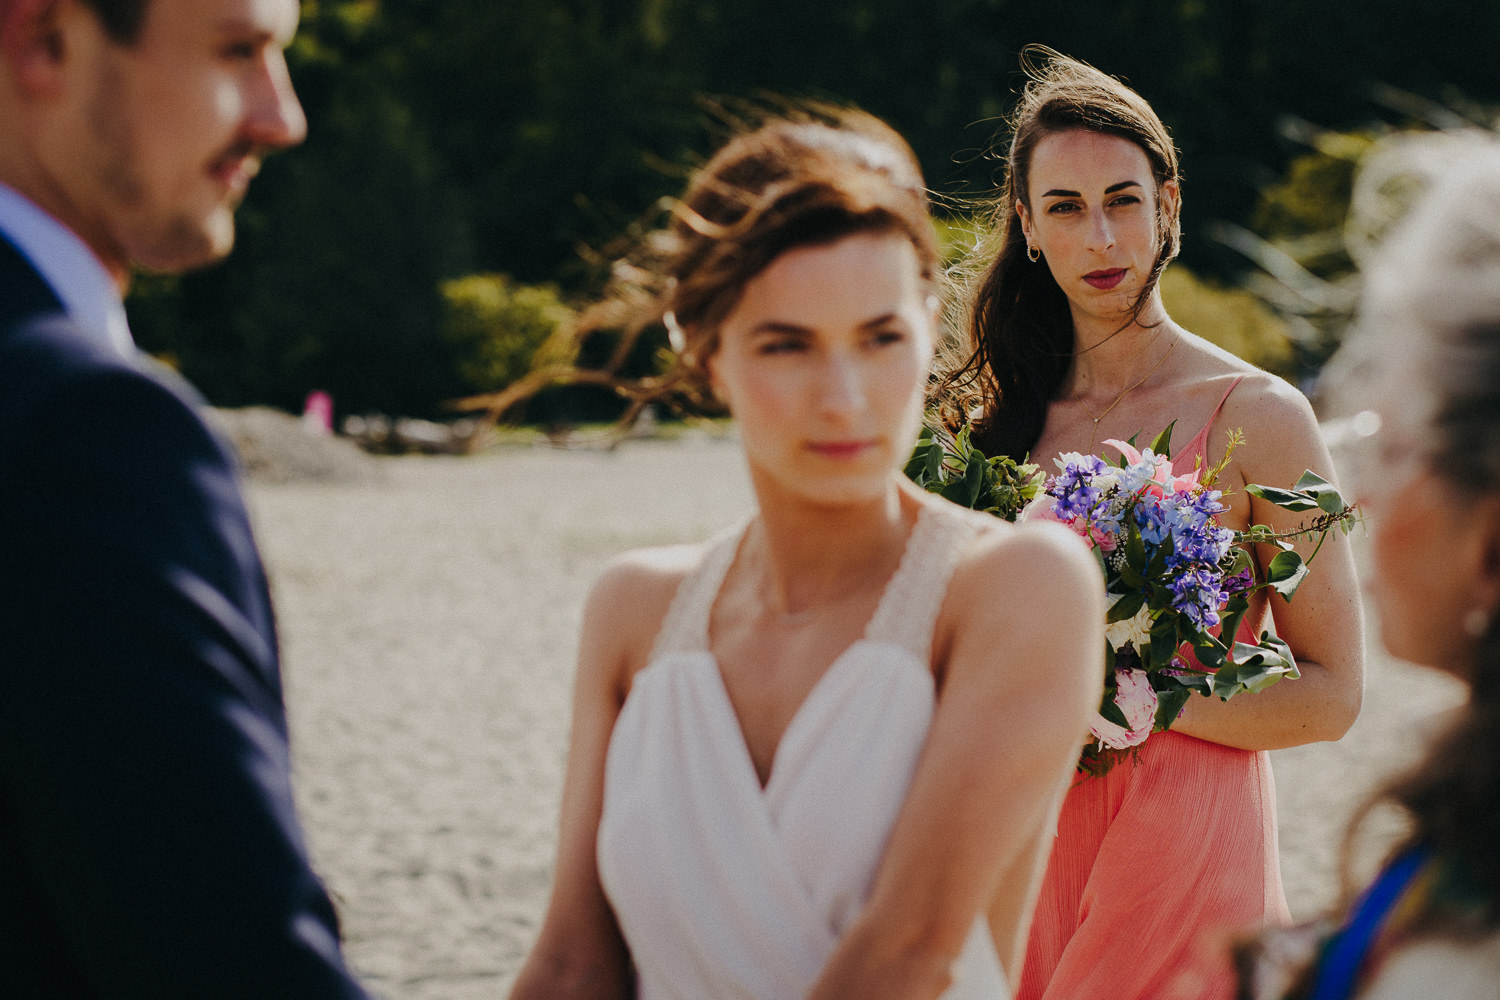 the maid of honor in the background